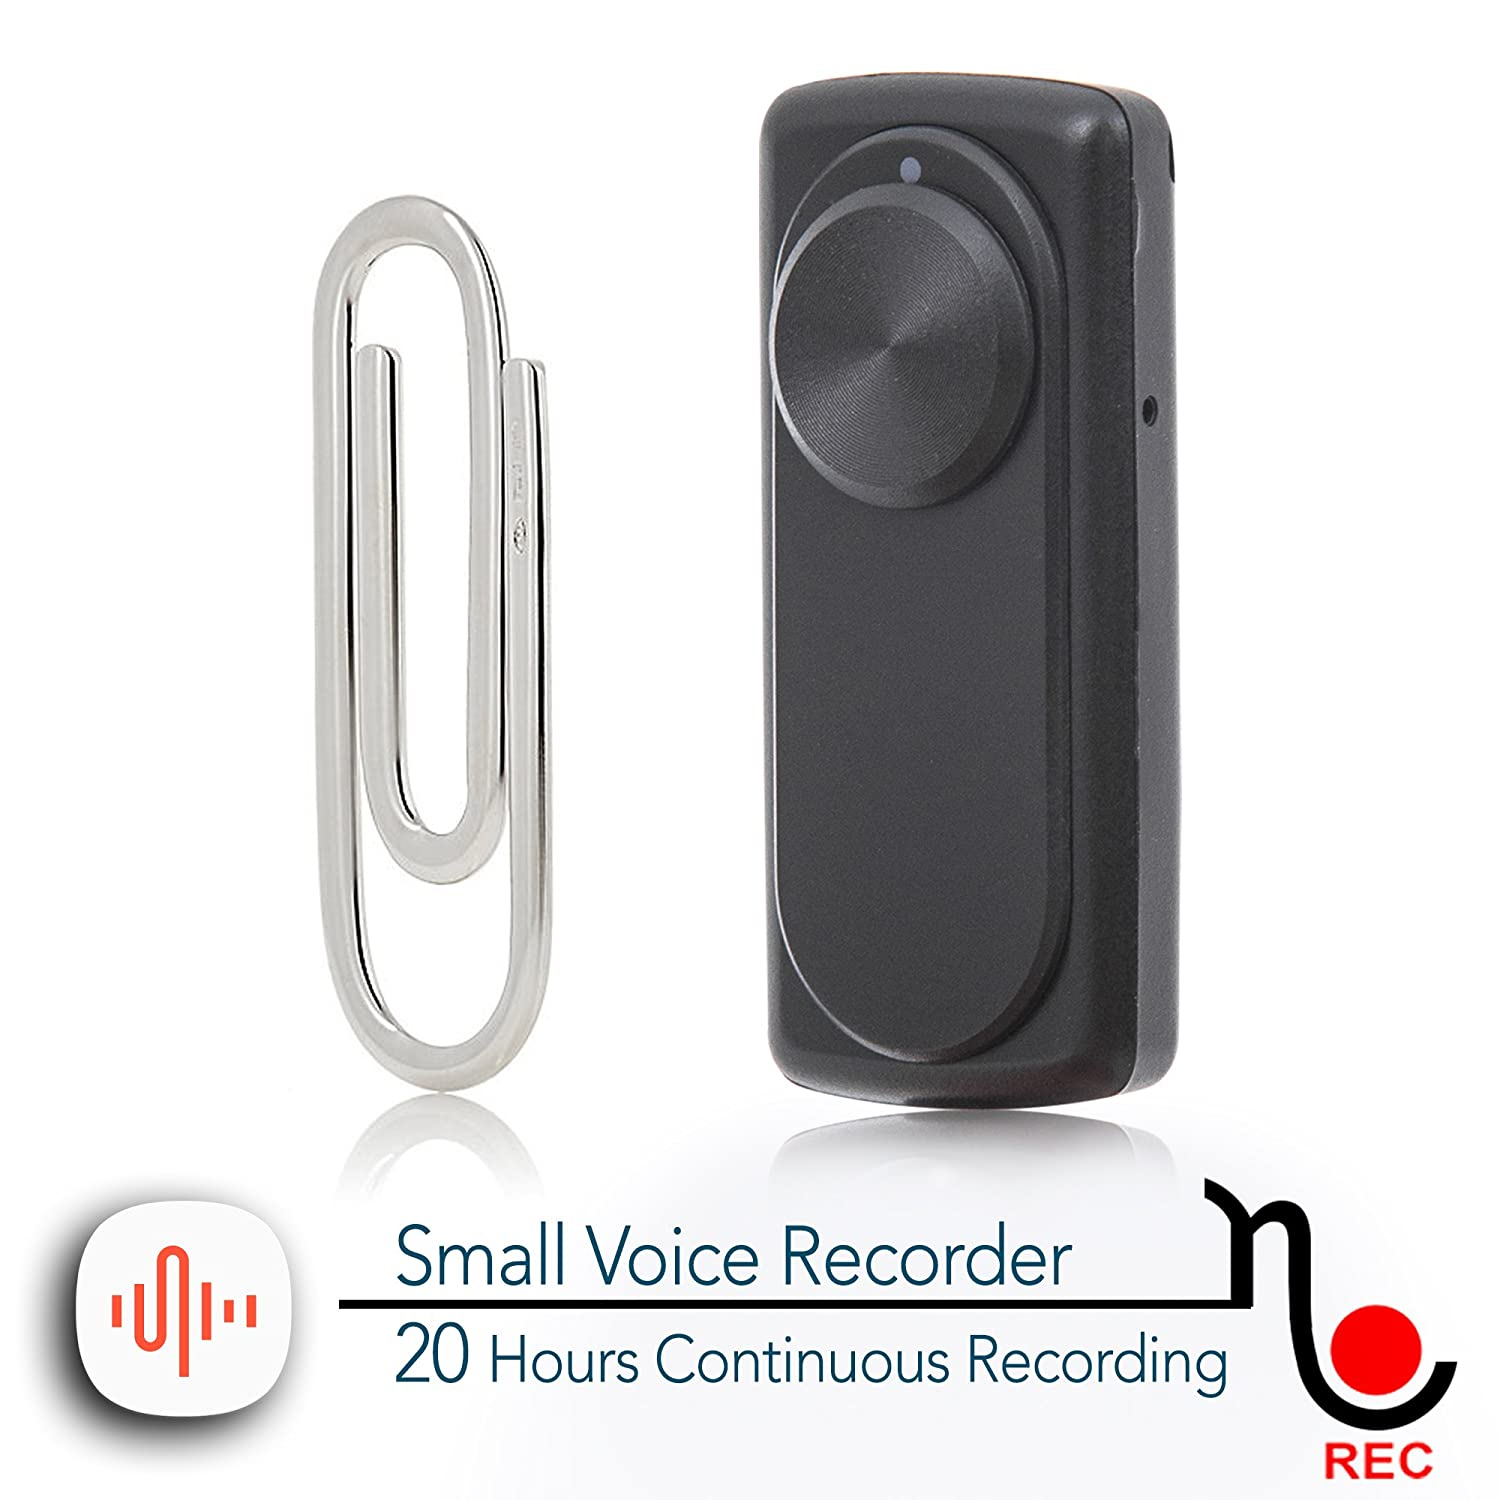 Small Voice Recorder with 20 Hours Battery Life | Ideal for Lectures, Meetings, Evidence or Interviews | 141 Hours Capacity on 8GB | nanoREC by aTTo digital